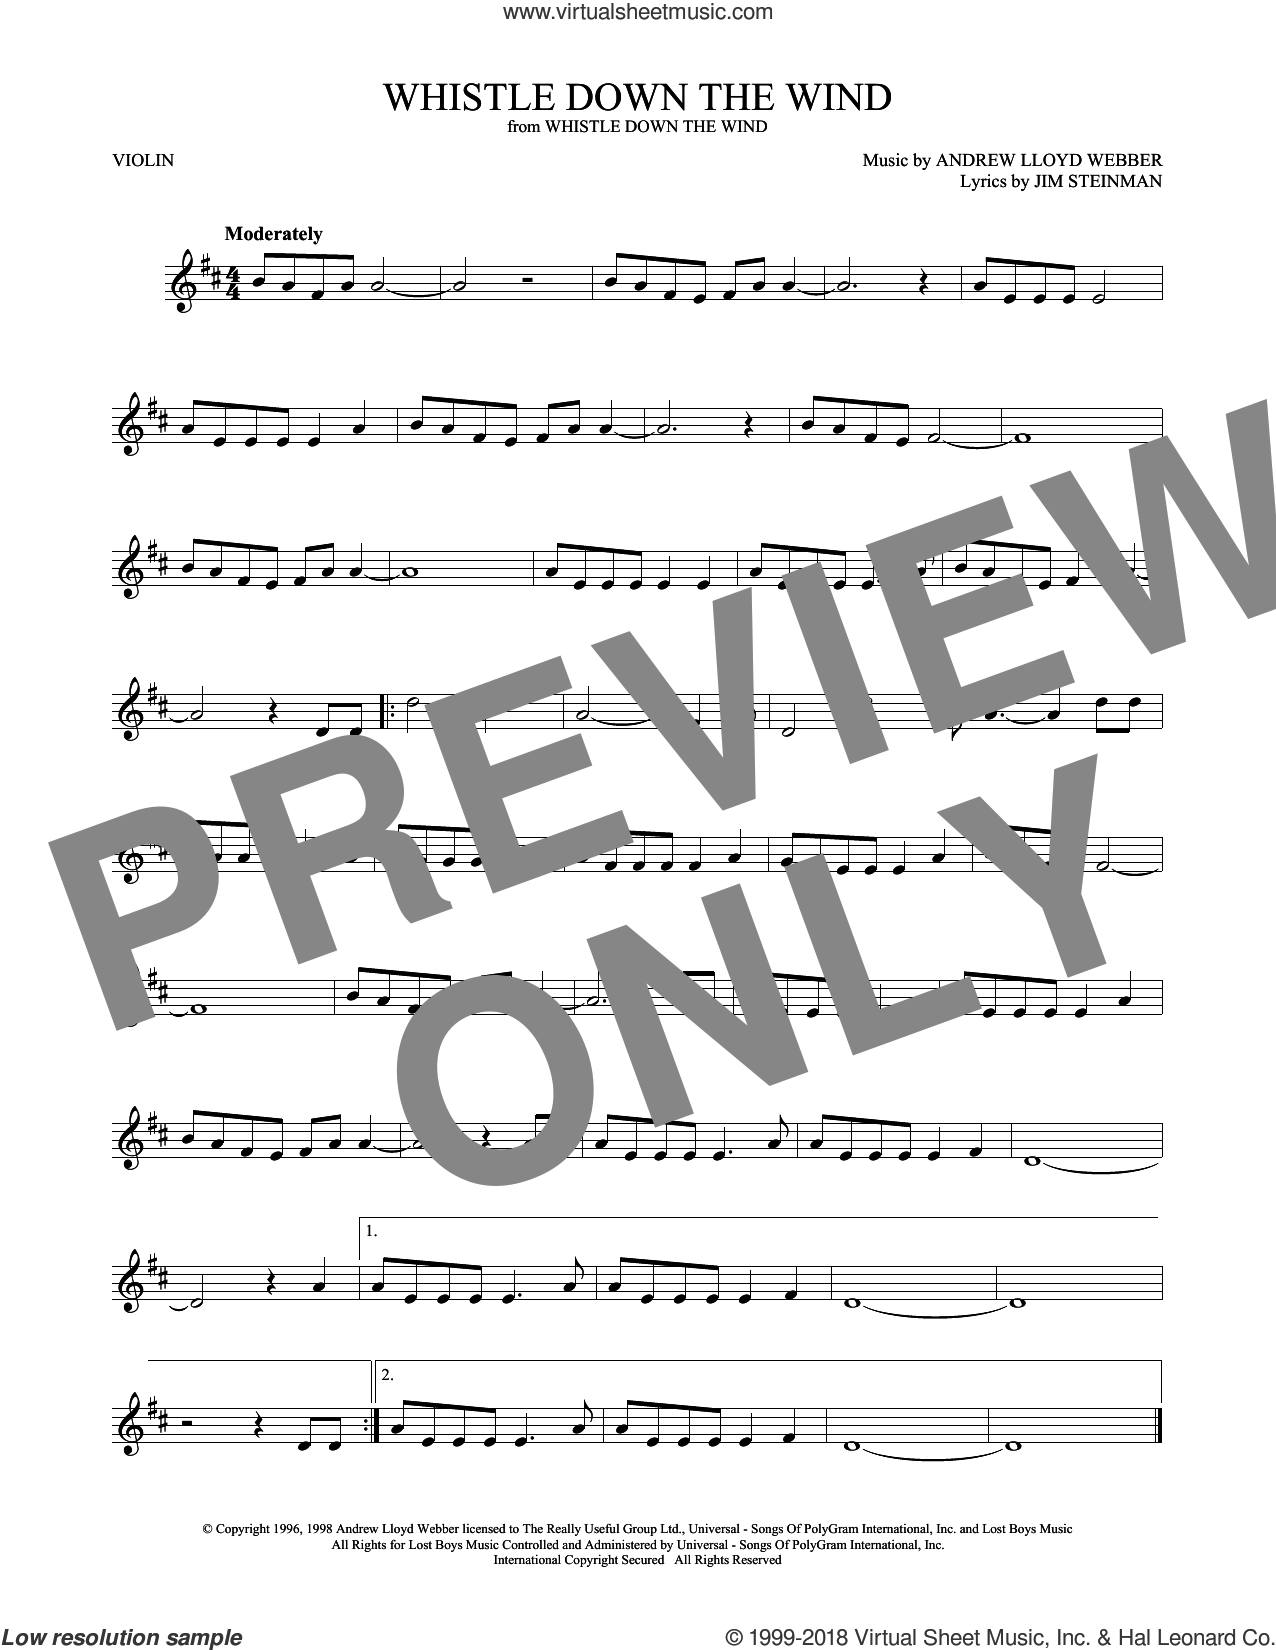 Whistle Down The Wind sheet music for violin solo by Andrew Lloyd Webber and Jim Steinman, intermediate skill level